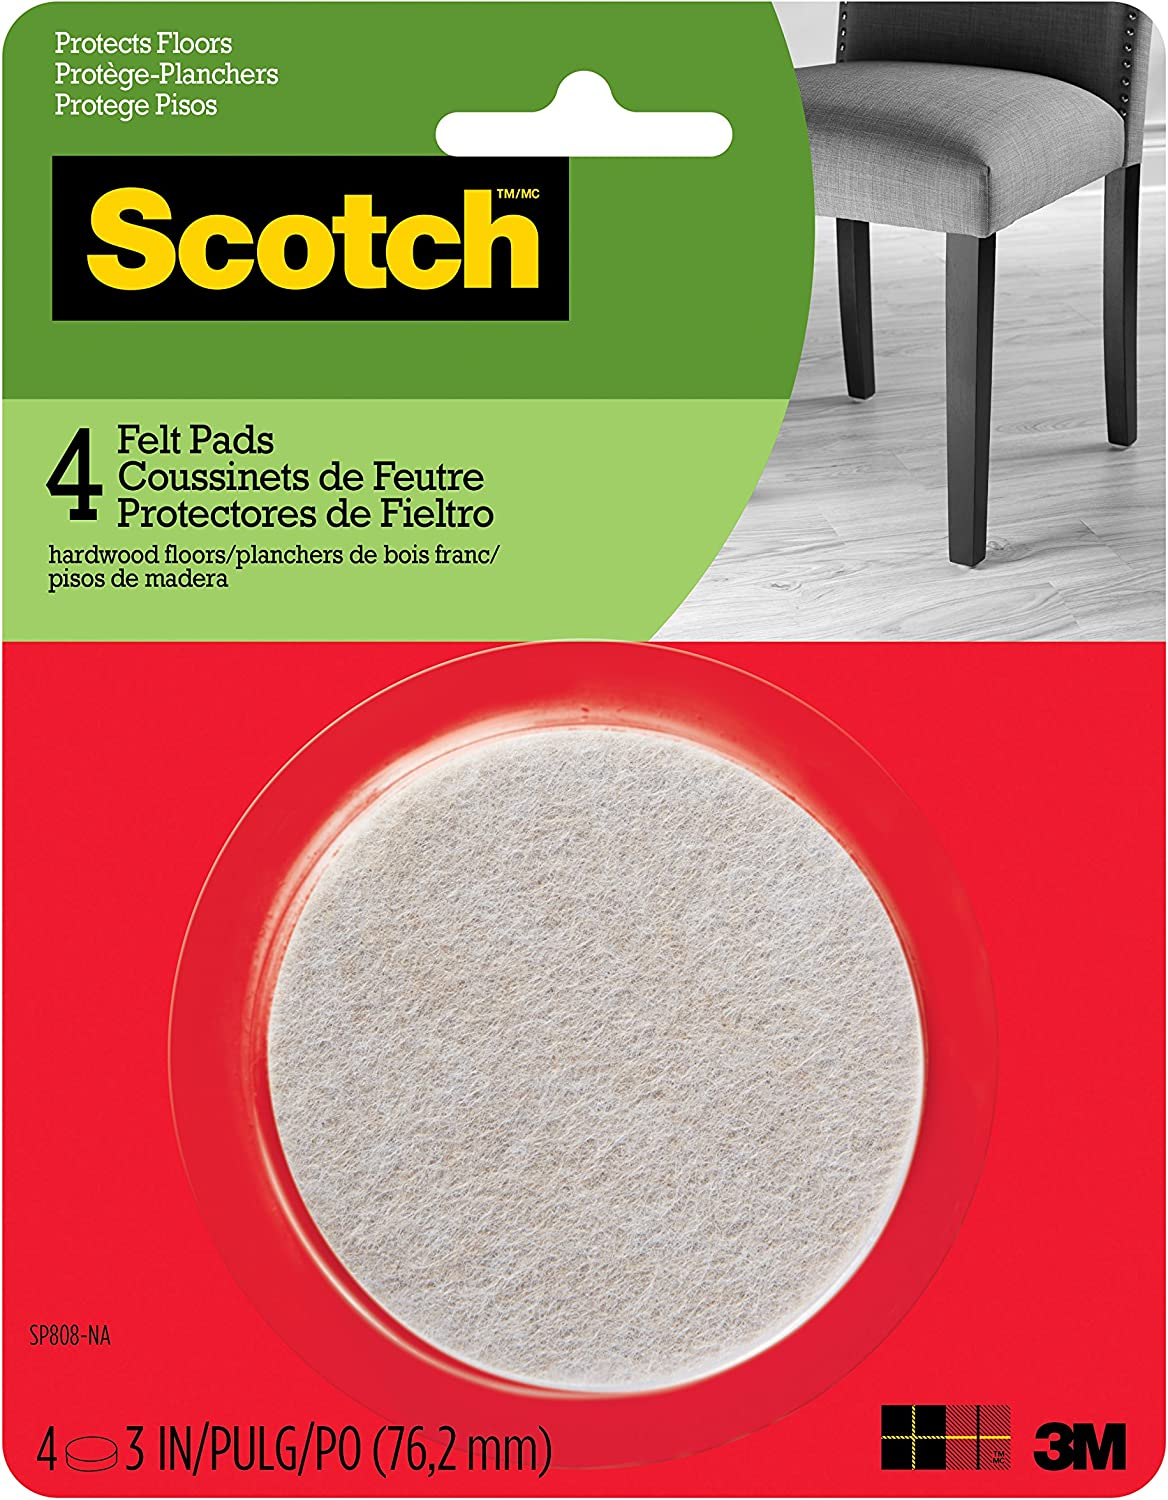 Scotch Mounting, Fastening & Surface Protection SP808-NA Scotch Felt Pads Round, 3 in. Diameter, Beige, 4/Pack